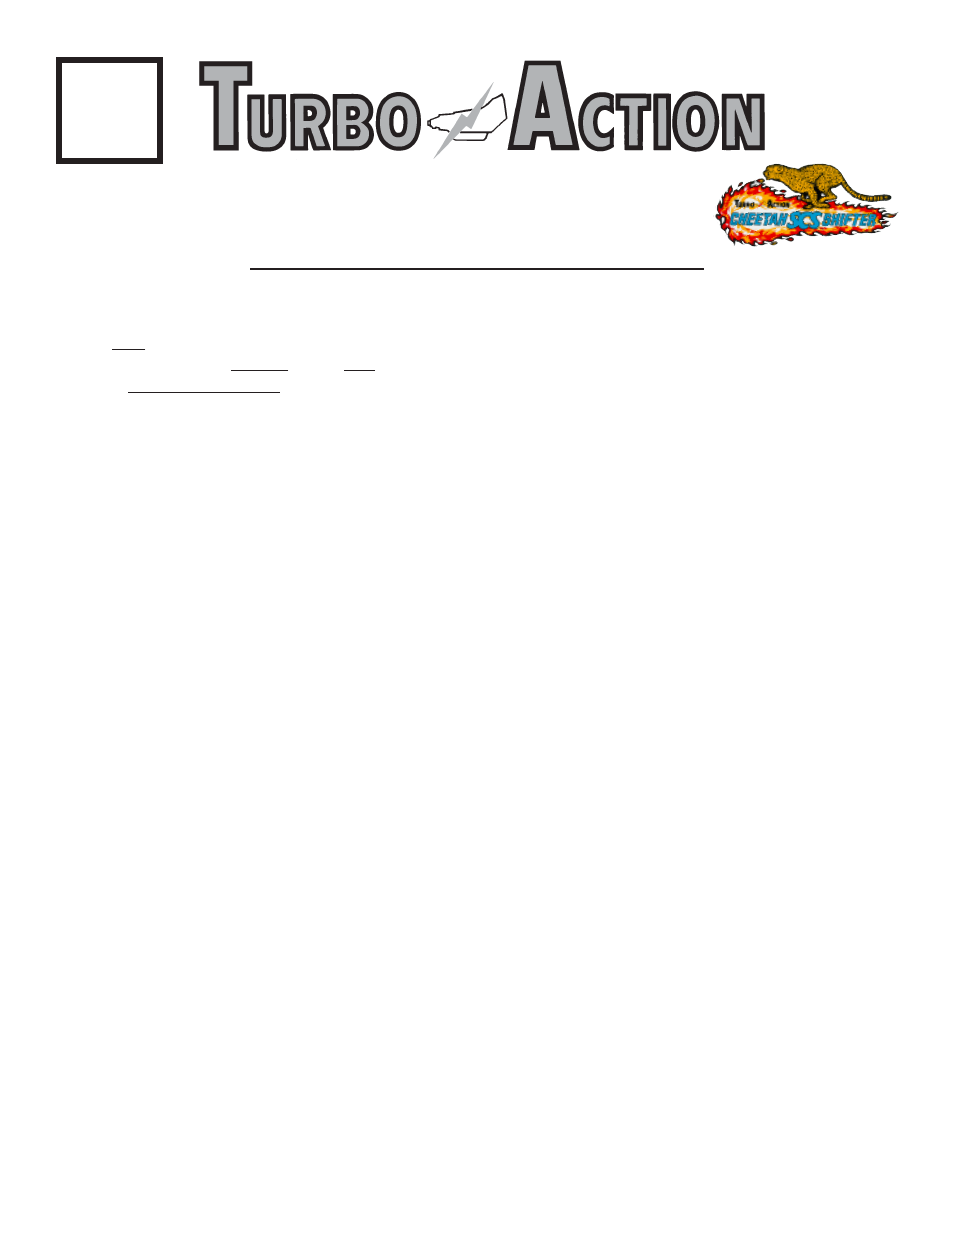 Turbo Action 70012 Cheetah Scs Shifter User Manual 8 Pages